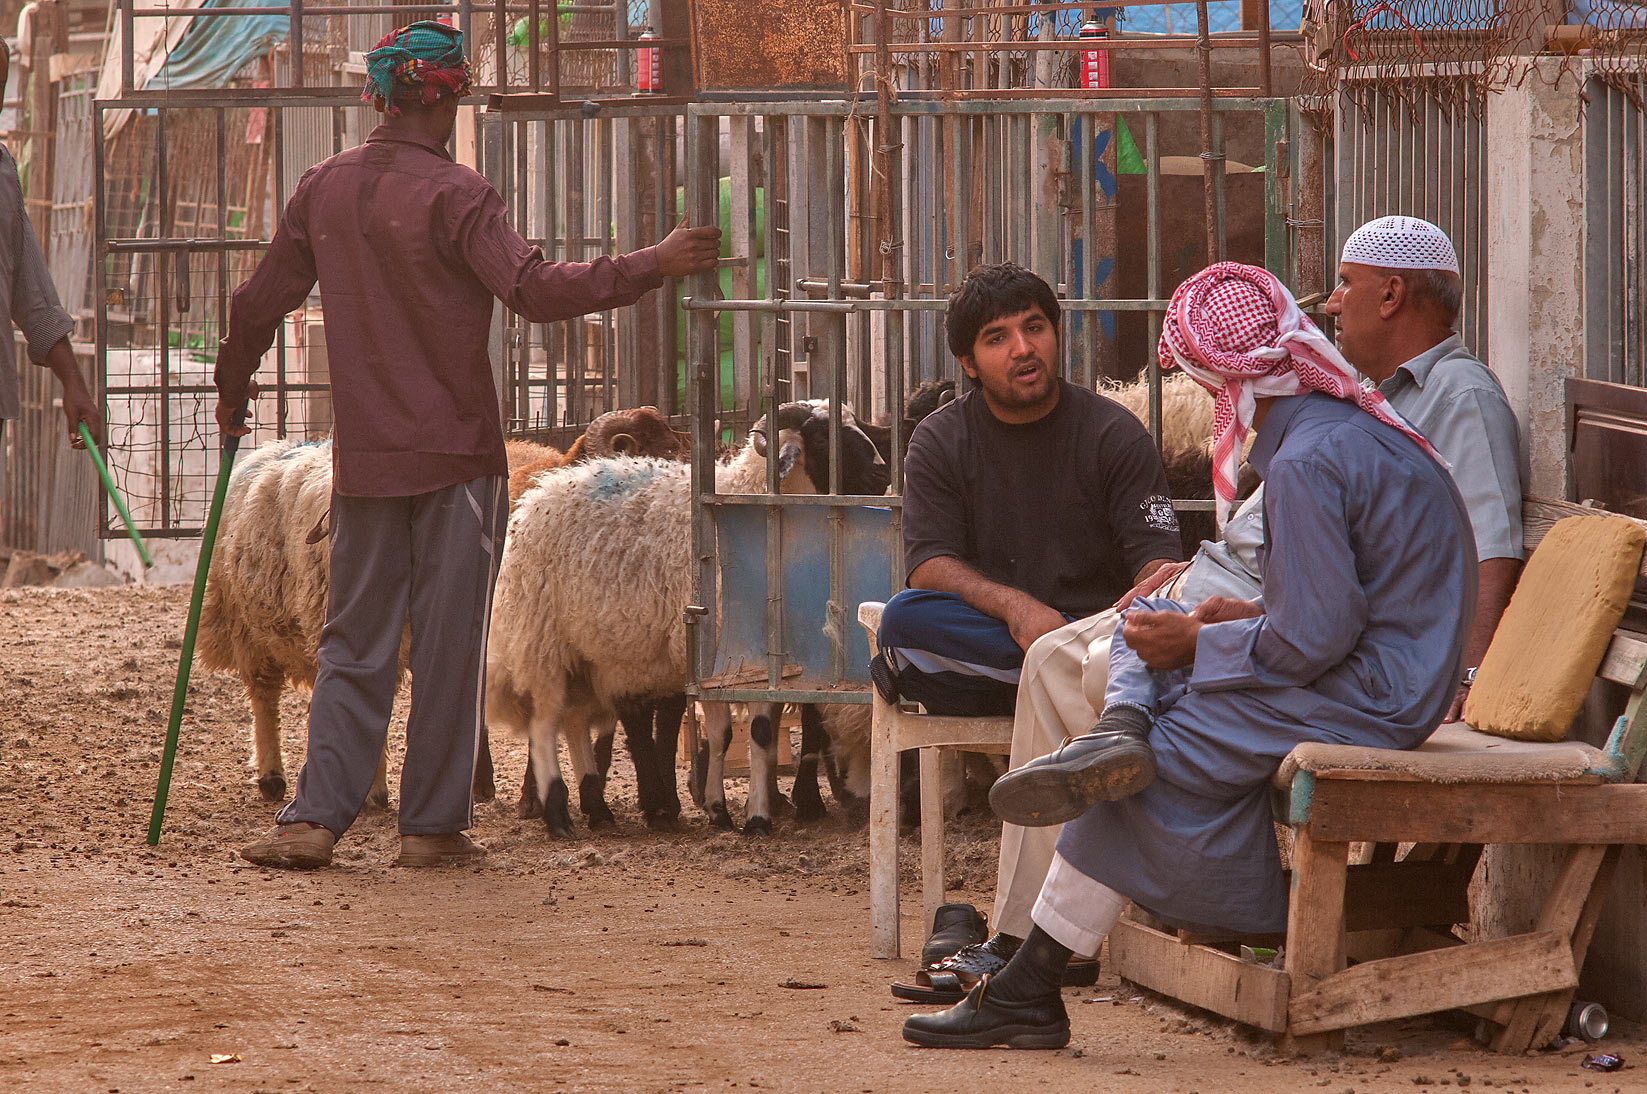 Moving herd of sheep in Livestock Market, Abu Hamour area. Doha, Qatar